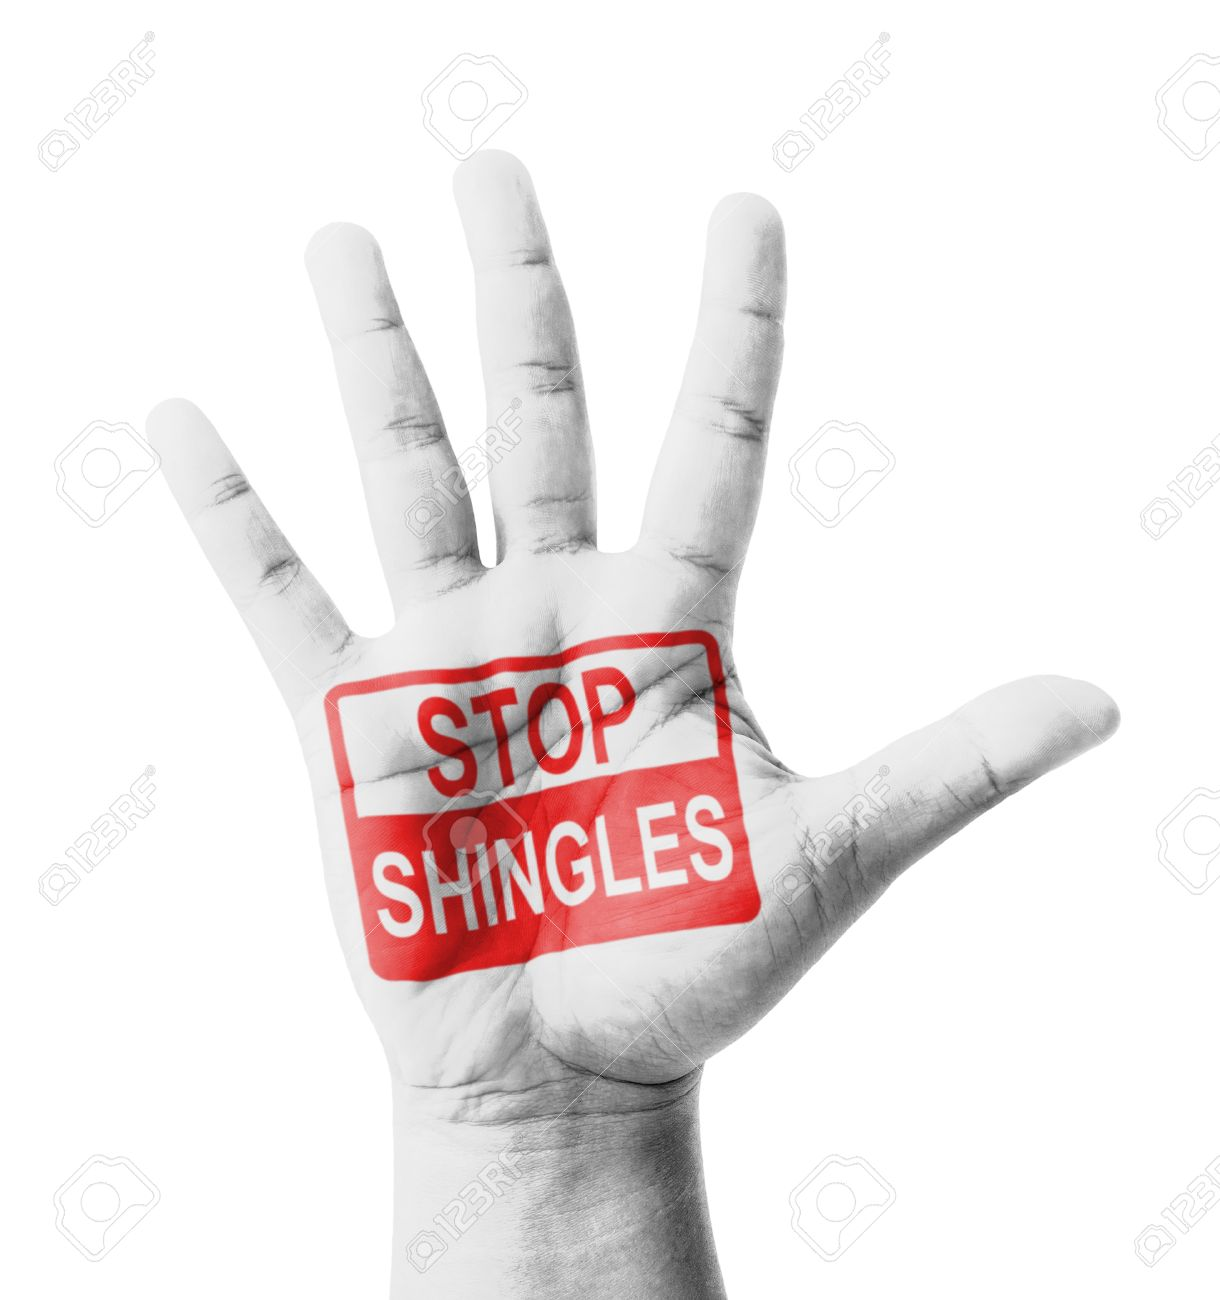 Open hand raised, Stop Shingles (Herpes zoster) sign painted, multi purpose concept - isolated on white background Stock Photo - 25830835